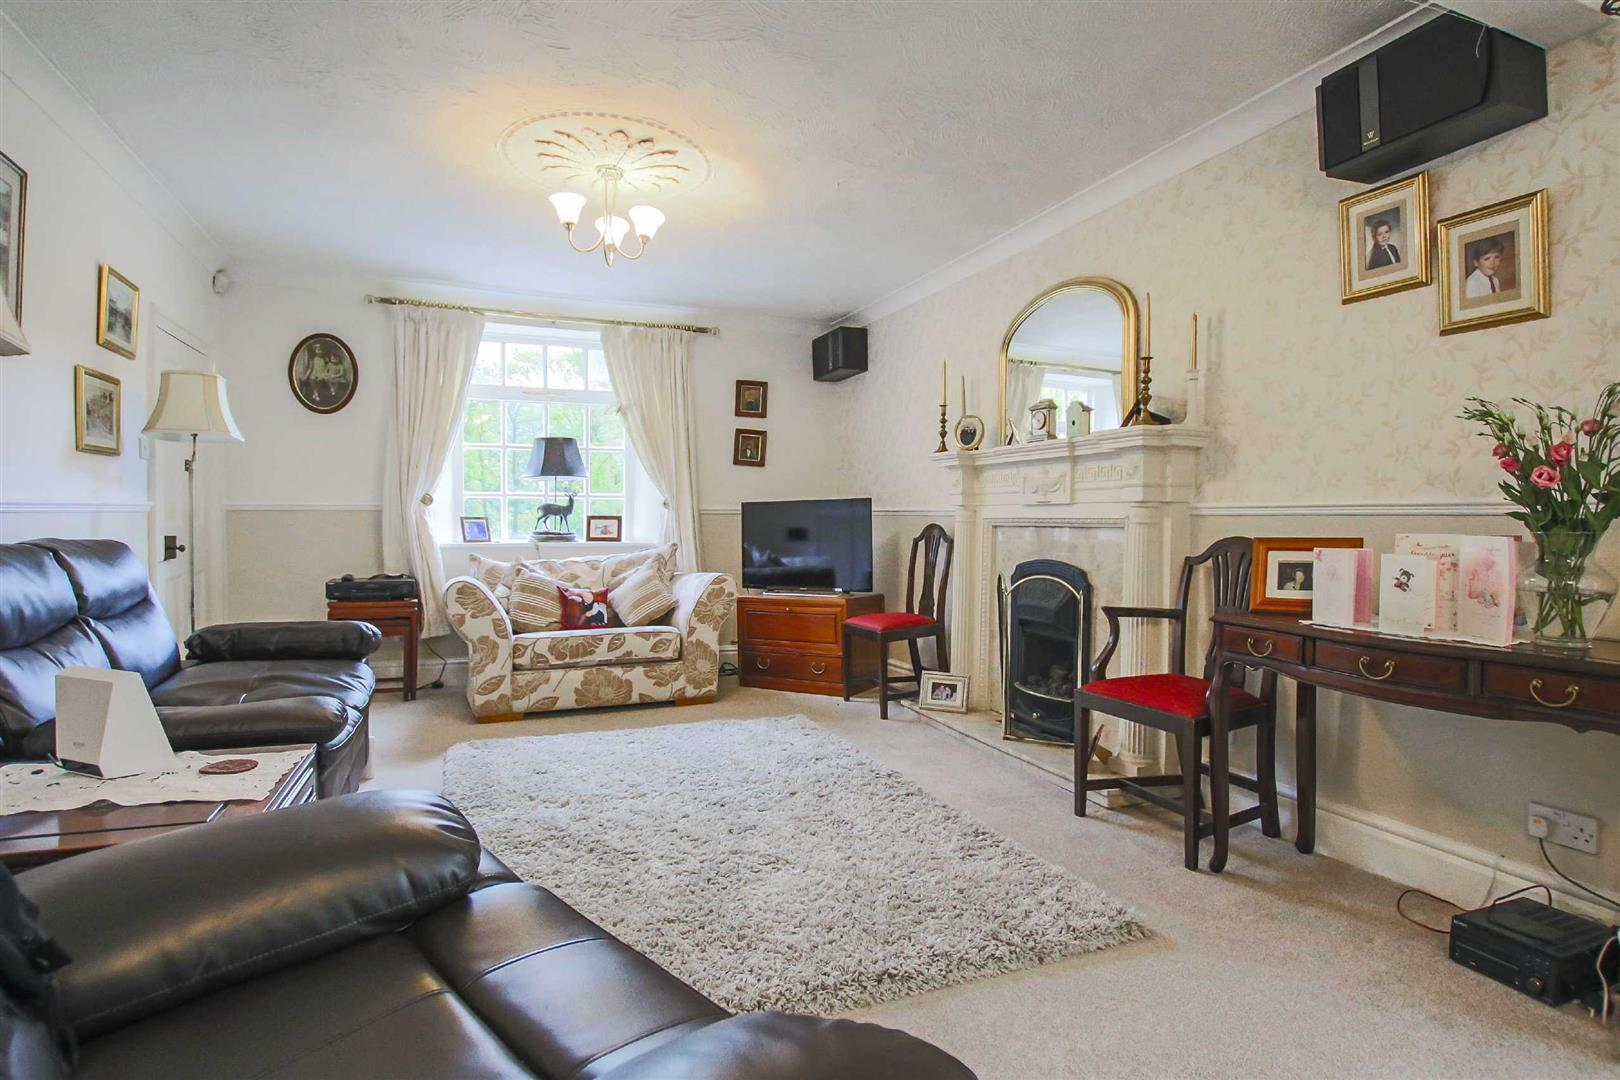 5 Bedroom Detached House For Sale - Image 28